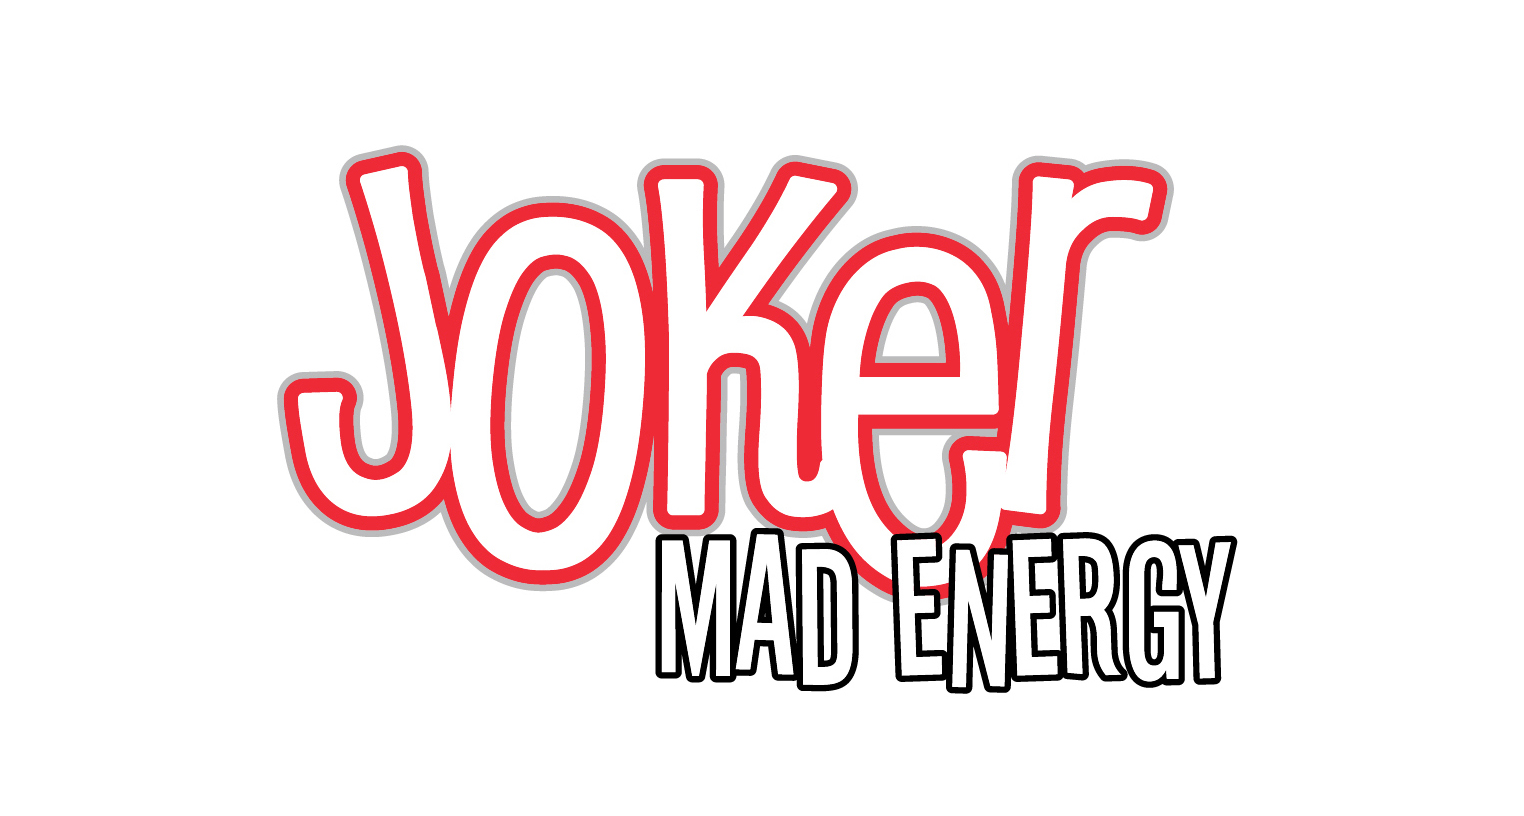 JOKER black mad01.jpg